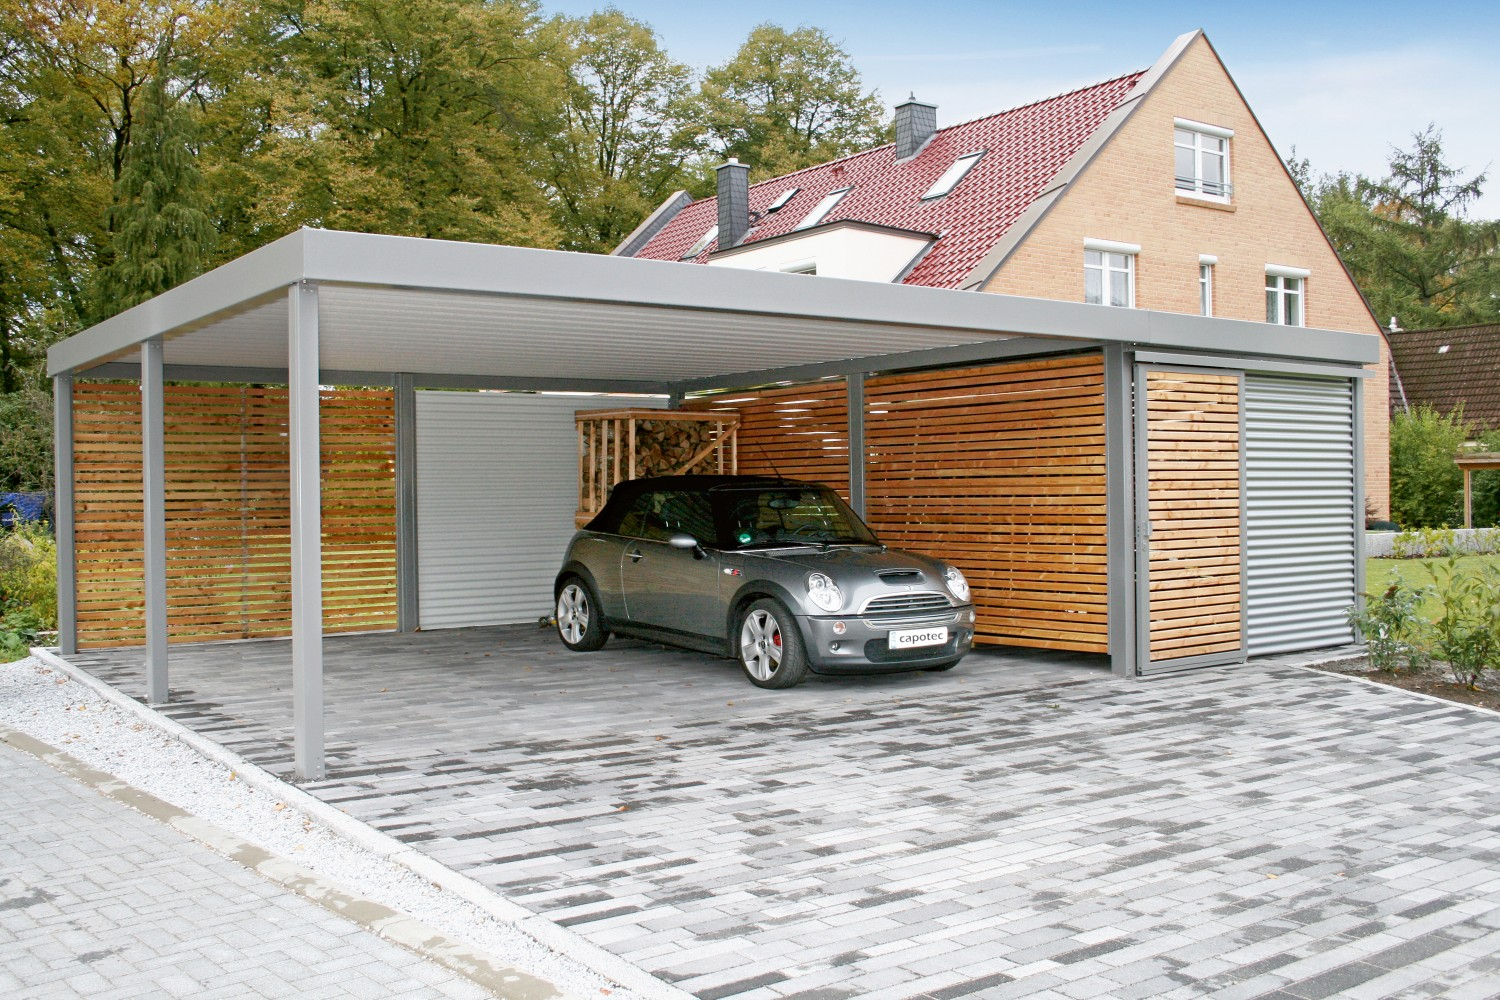 deutlich mehr als nur ein dach den carport flexibel als mehrzweckraum nutzen bild 1. Black Bedroom Furniture Sets. Home Design Ideas